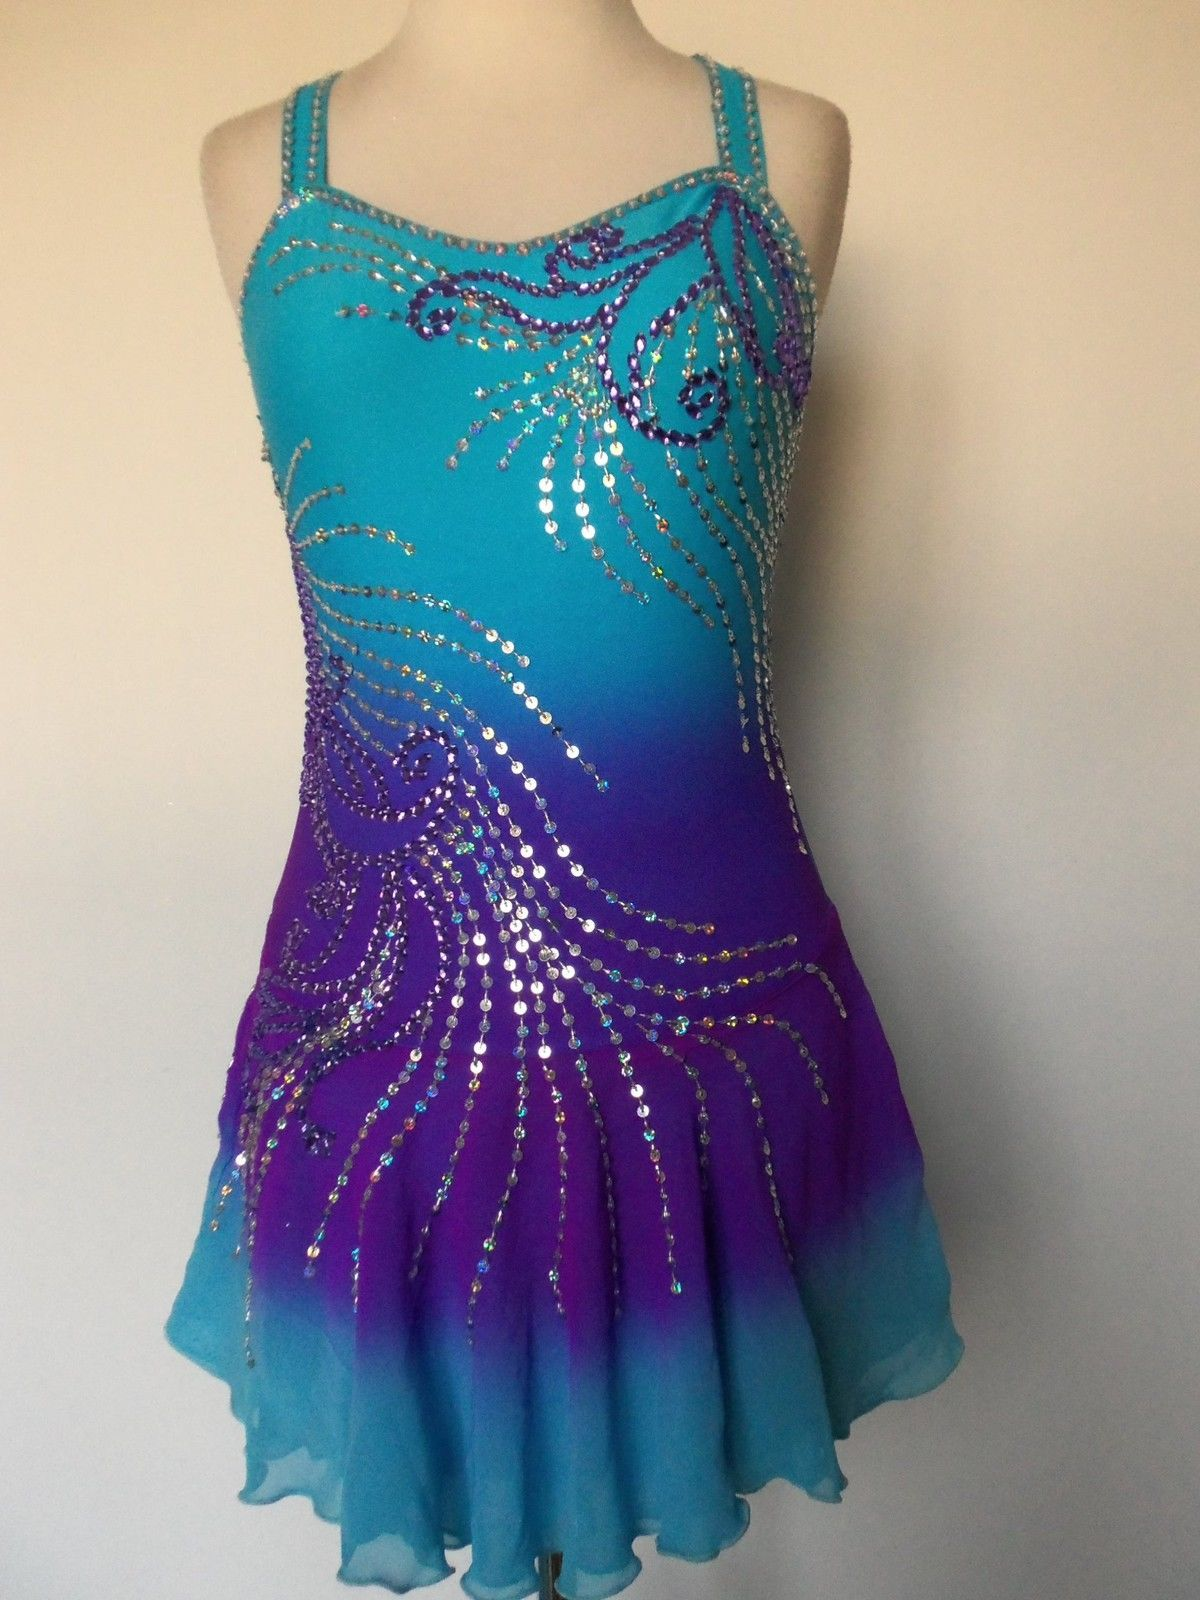 New Figure Ice Skating Baton Twirling Dress Costume Child L | eBay ...